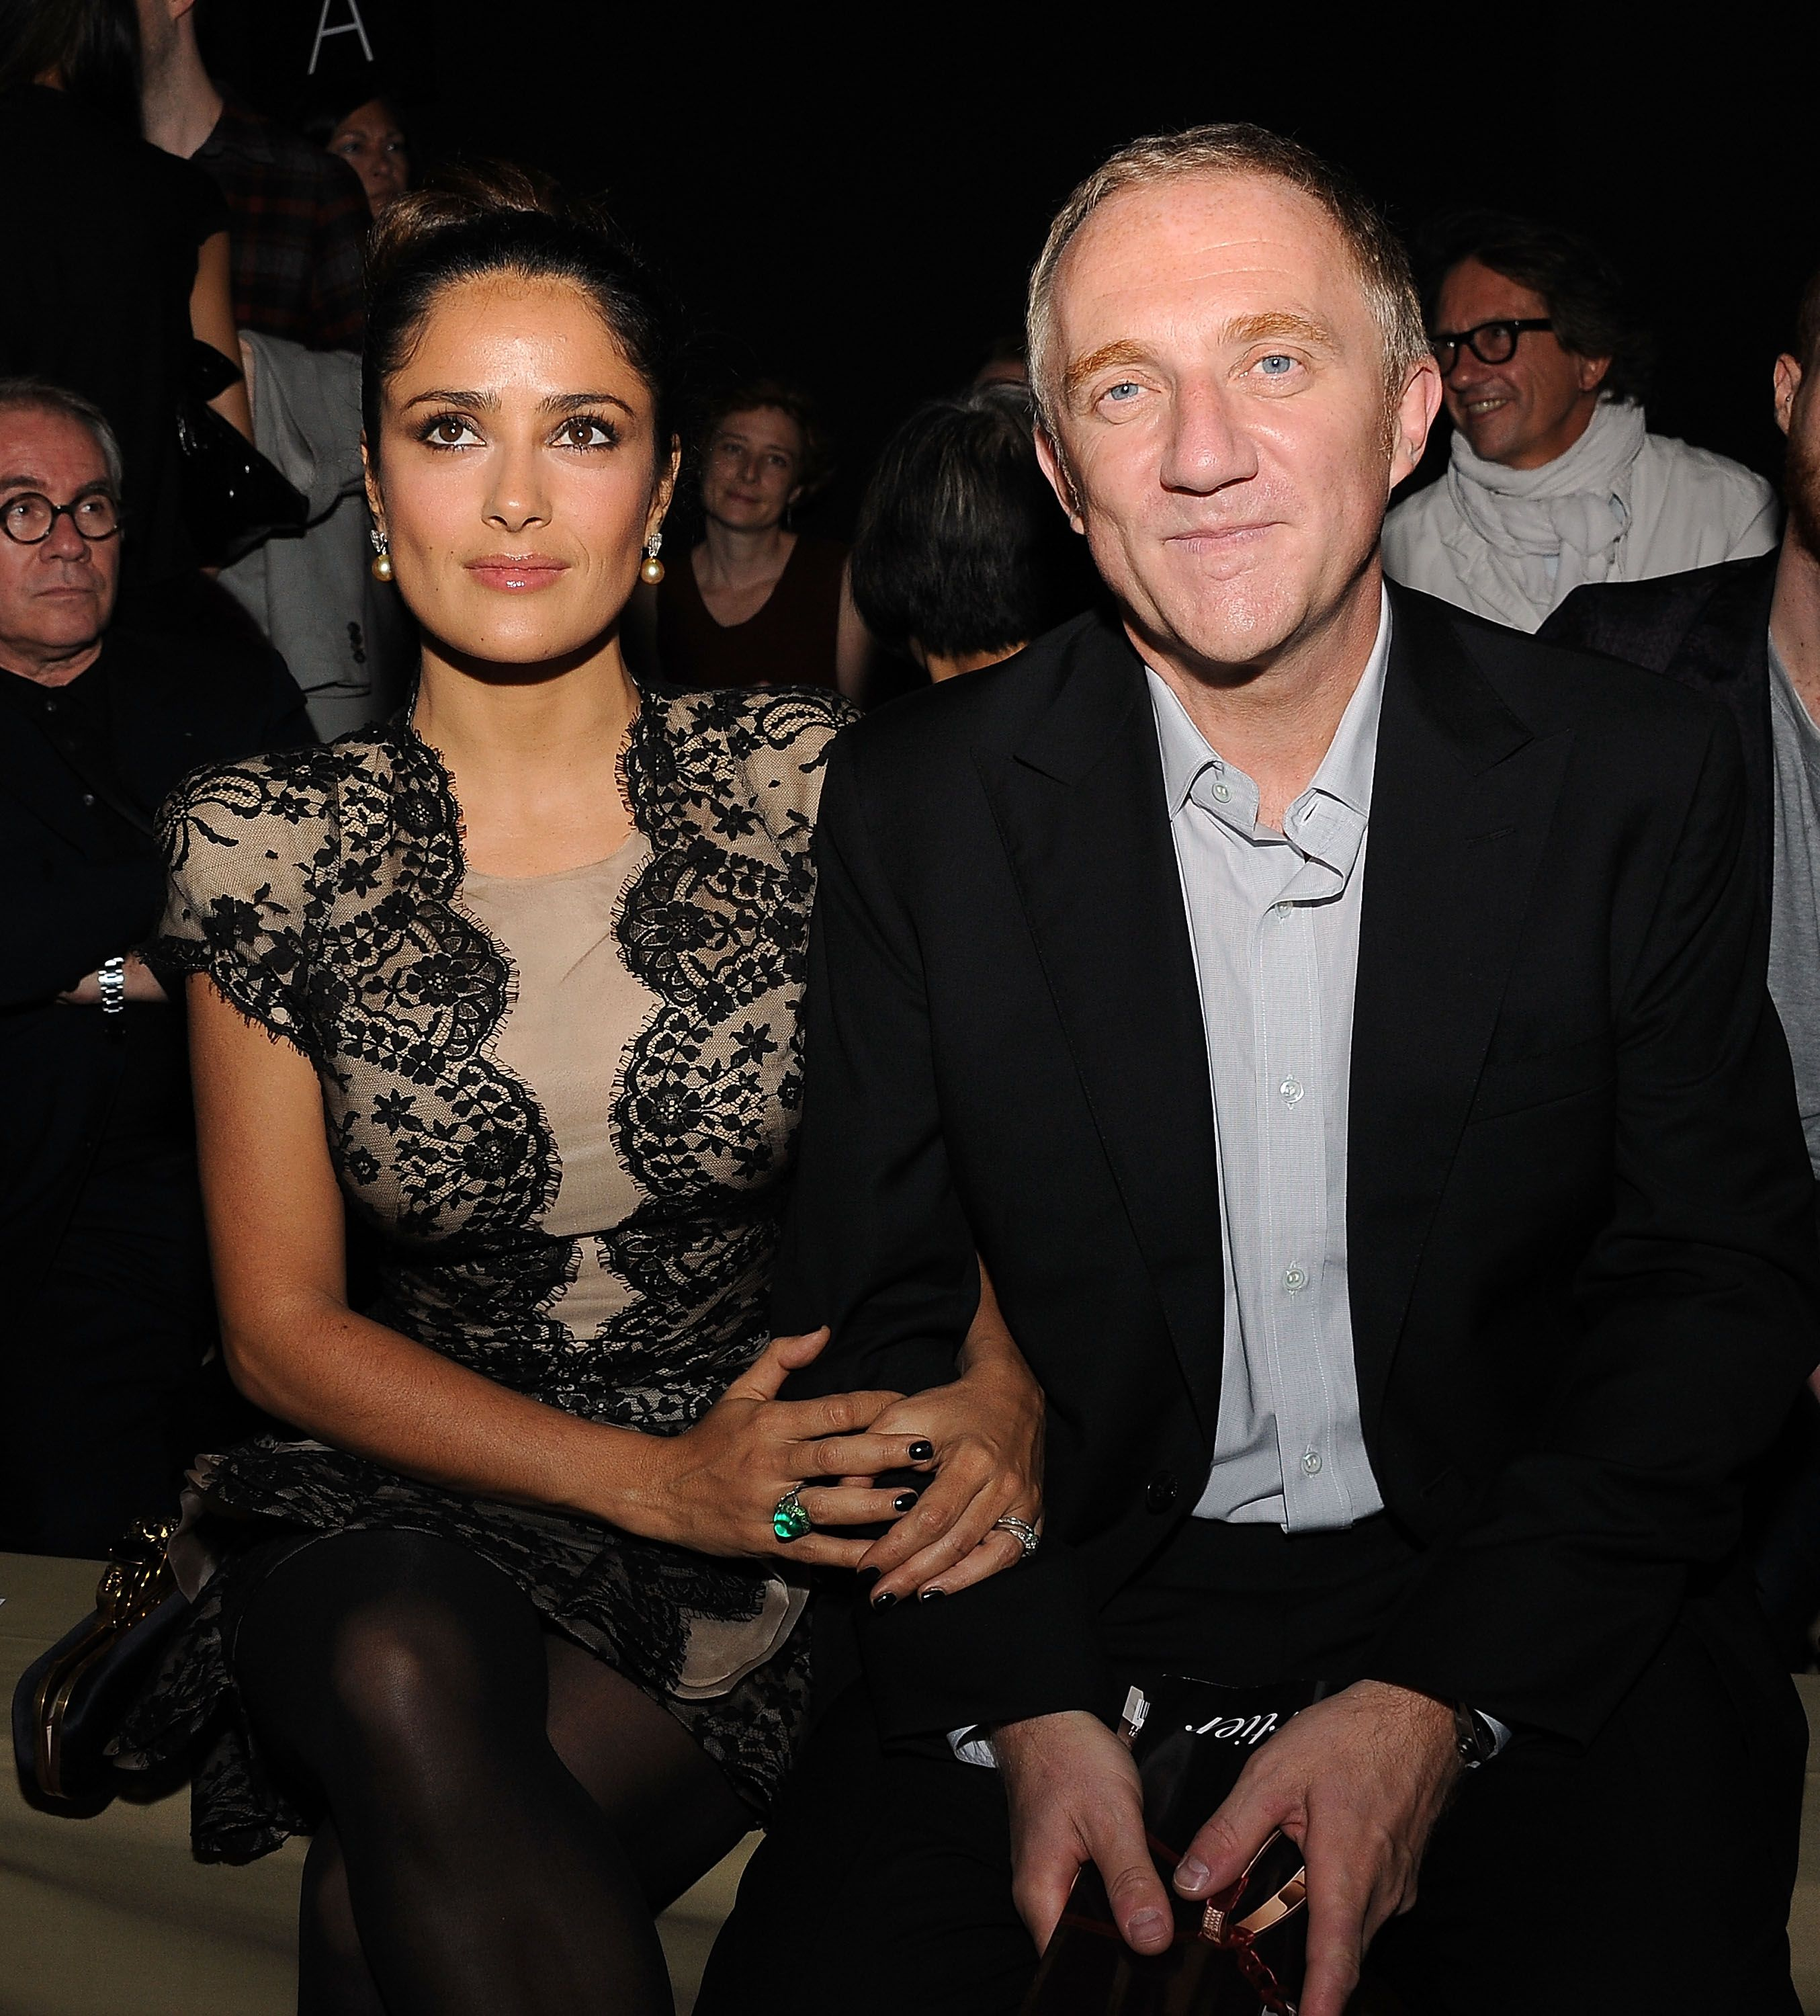 Salma Hayek and Francois-Henri Pinault during the Alexander McQueen Ready to Wear Spring/Summer show during Paris Fashion Week on October 5, 2010, in France. | Source: Getty Images